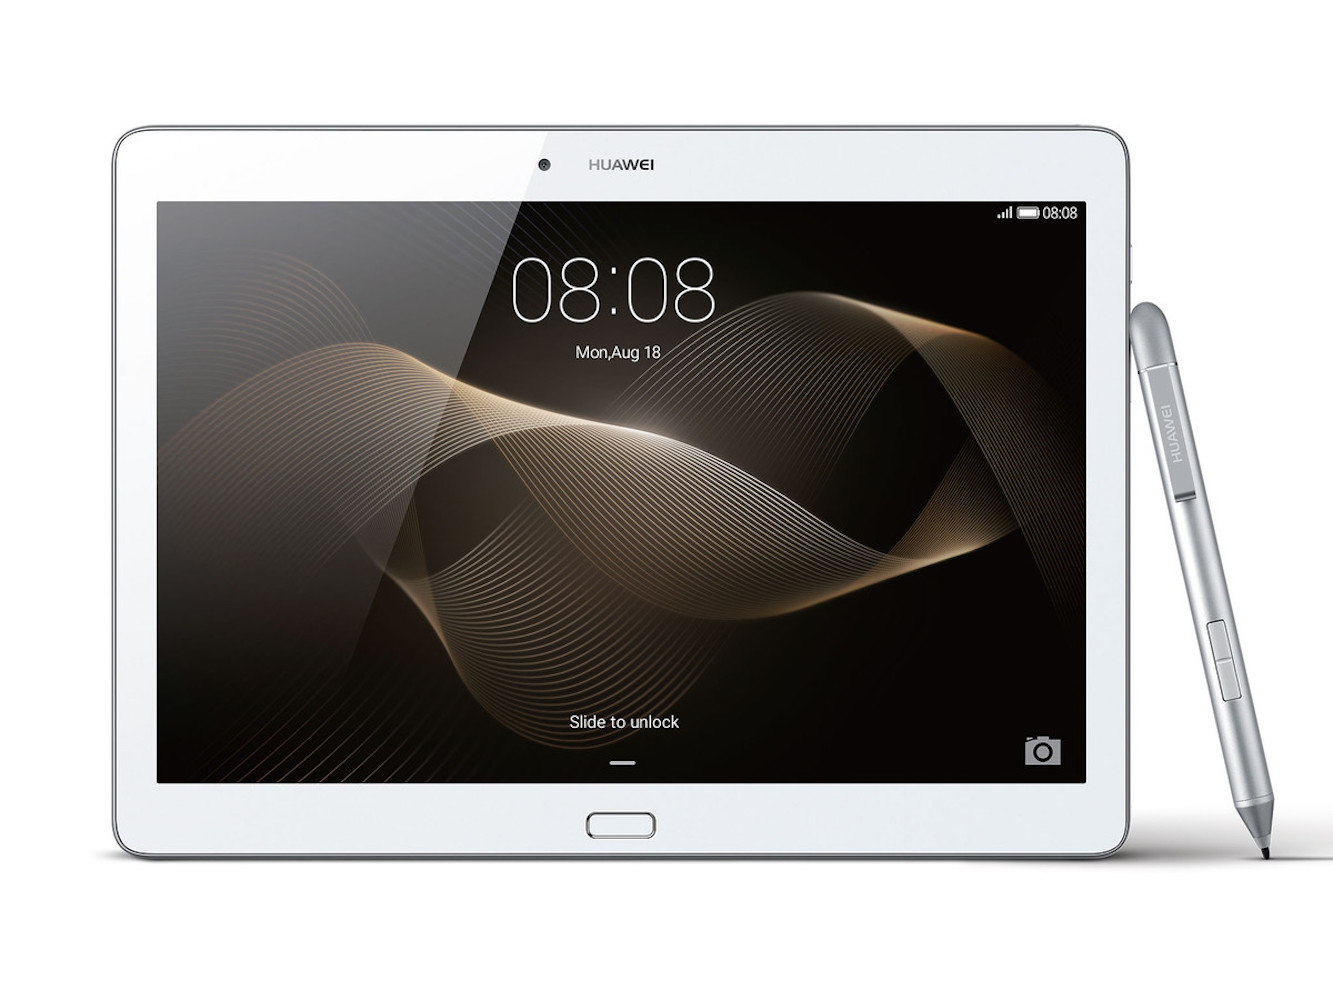 huawei-mediapad-m2-10-inch-tablet-with-intelligent-display-03